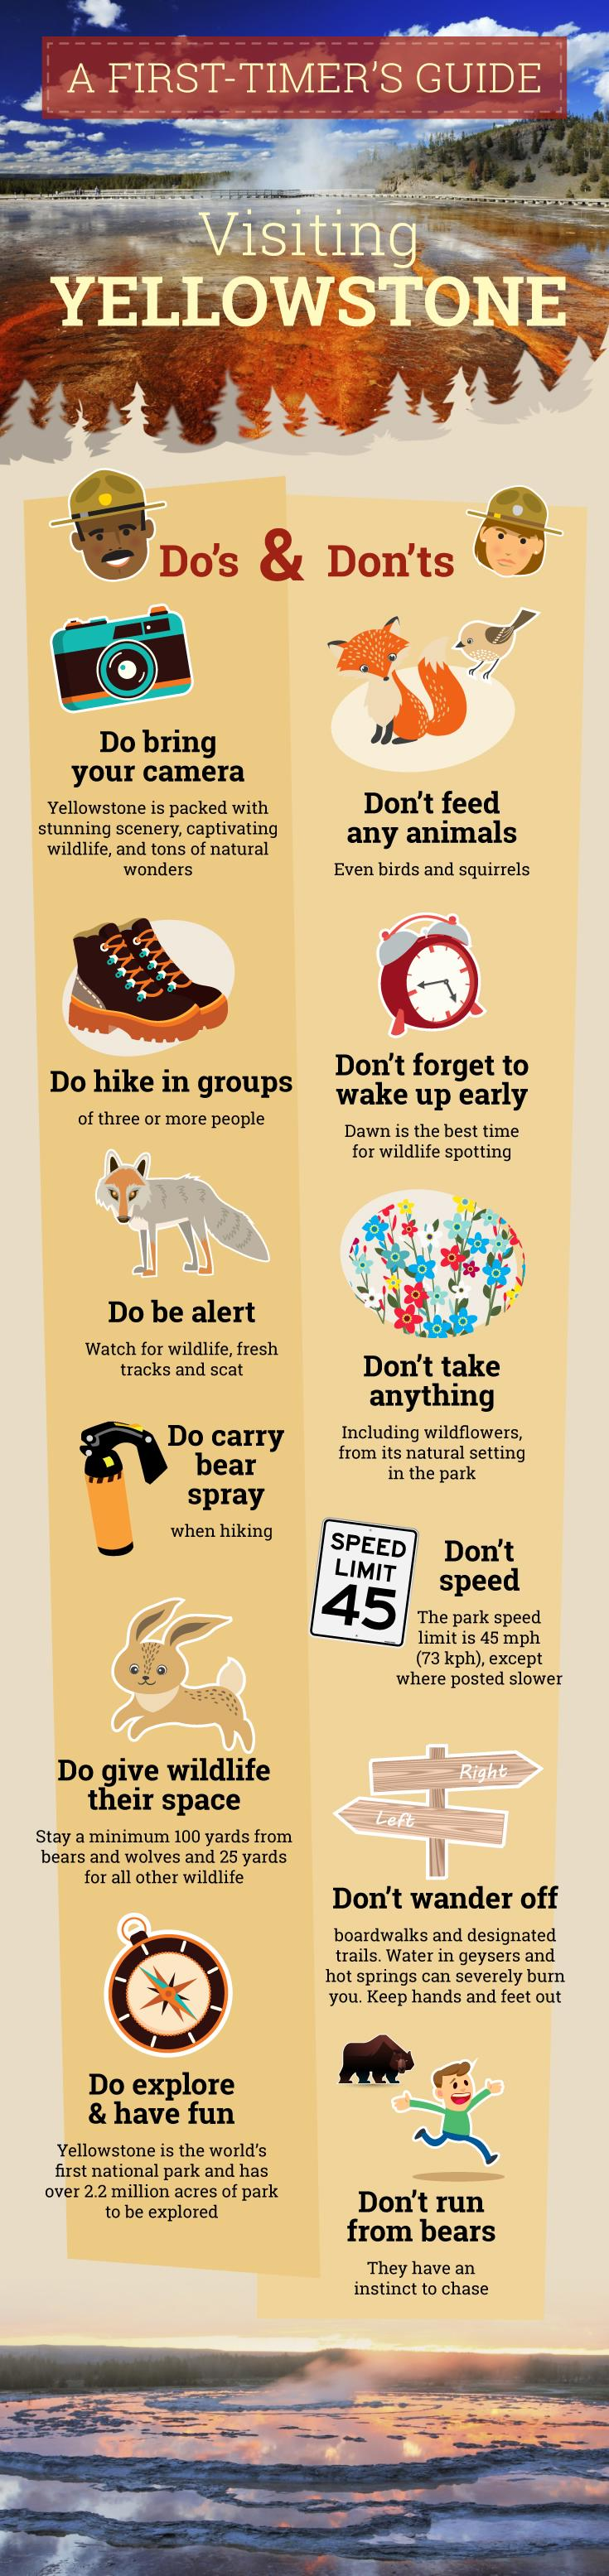 Yellowstone Guide - Do's and Don'ts